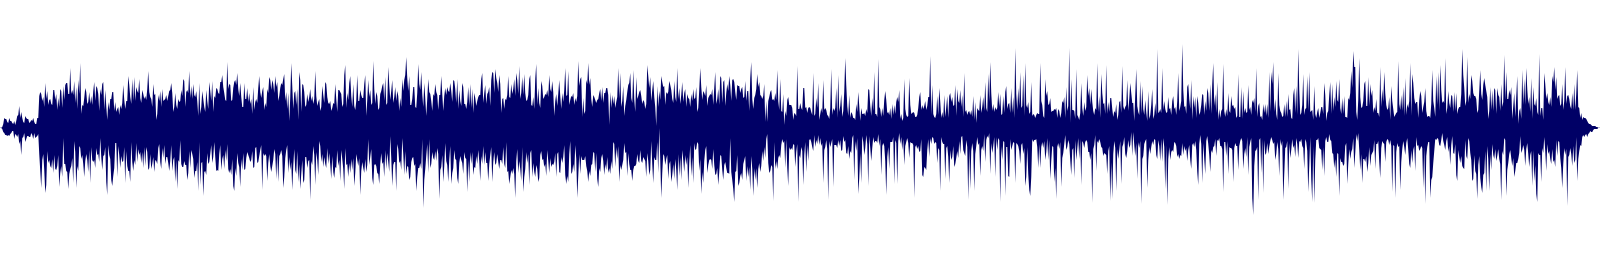 waveform of track #106154